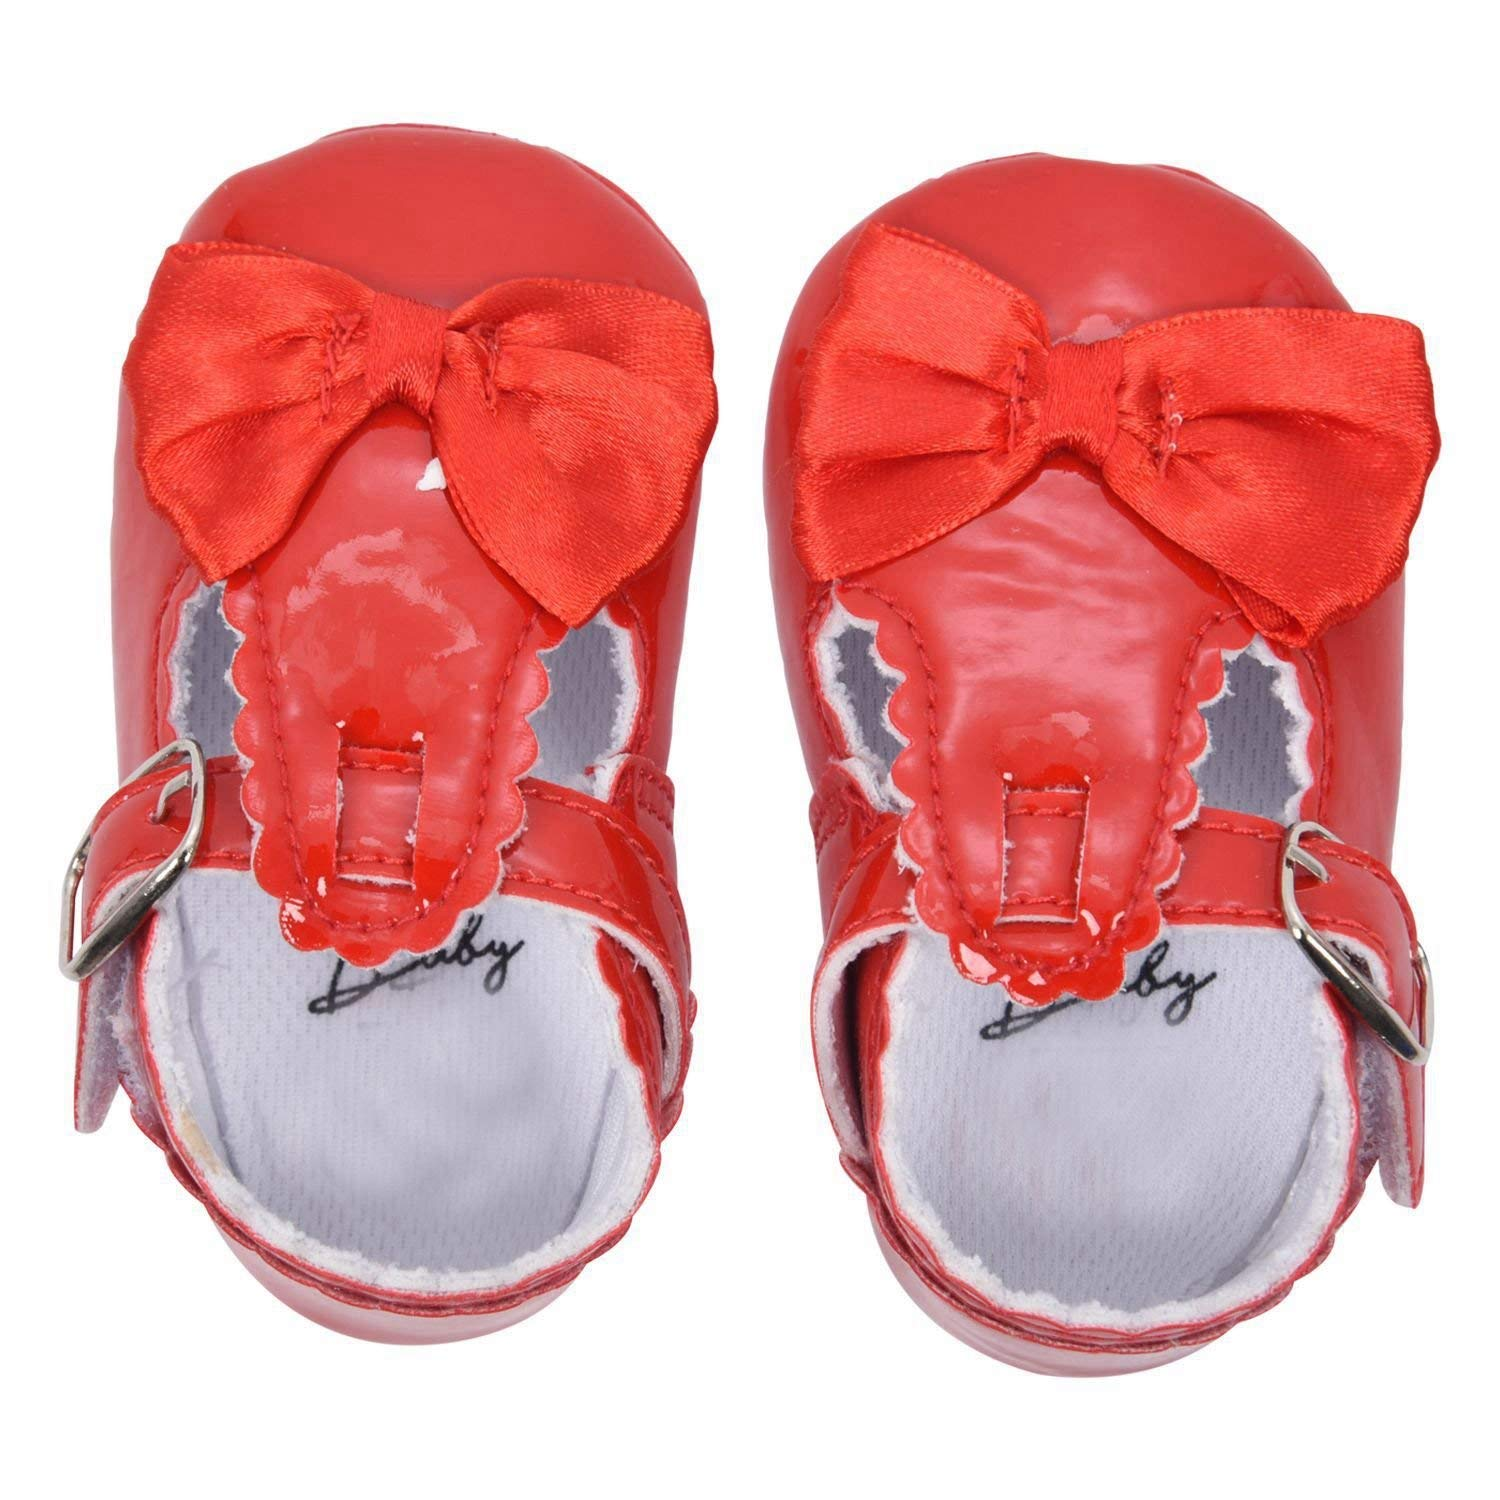 0fb3b539f657 Get Quotations · SODIAL(R) Newborn Baby Girl Bow Anti-slip Crib Shoes Soft  Sole Sneakers